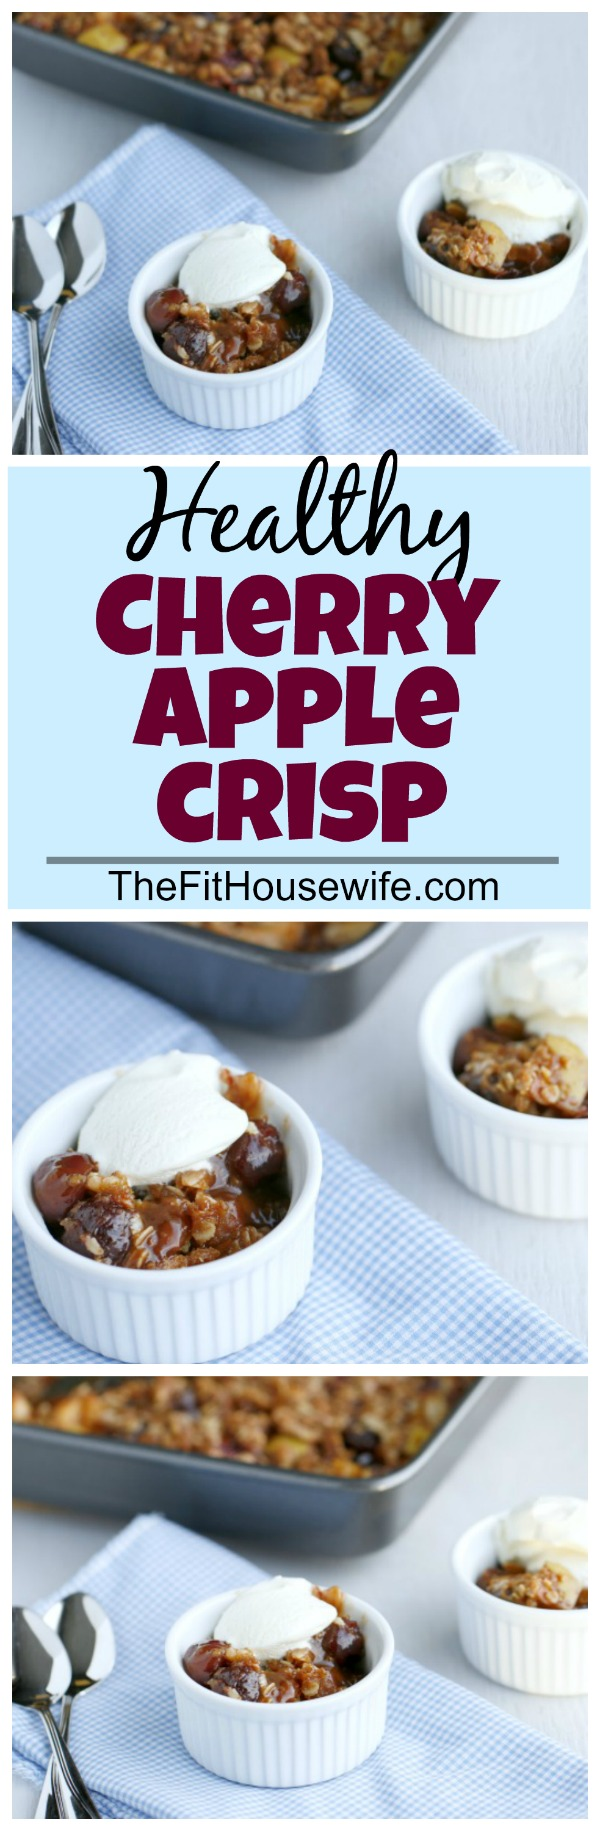 Healthy Cherry Apple Crisp. Filled with delicious fruit